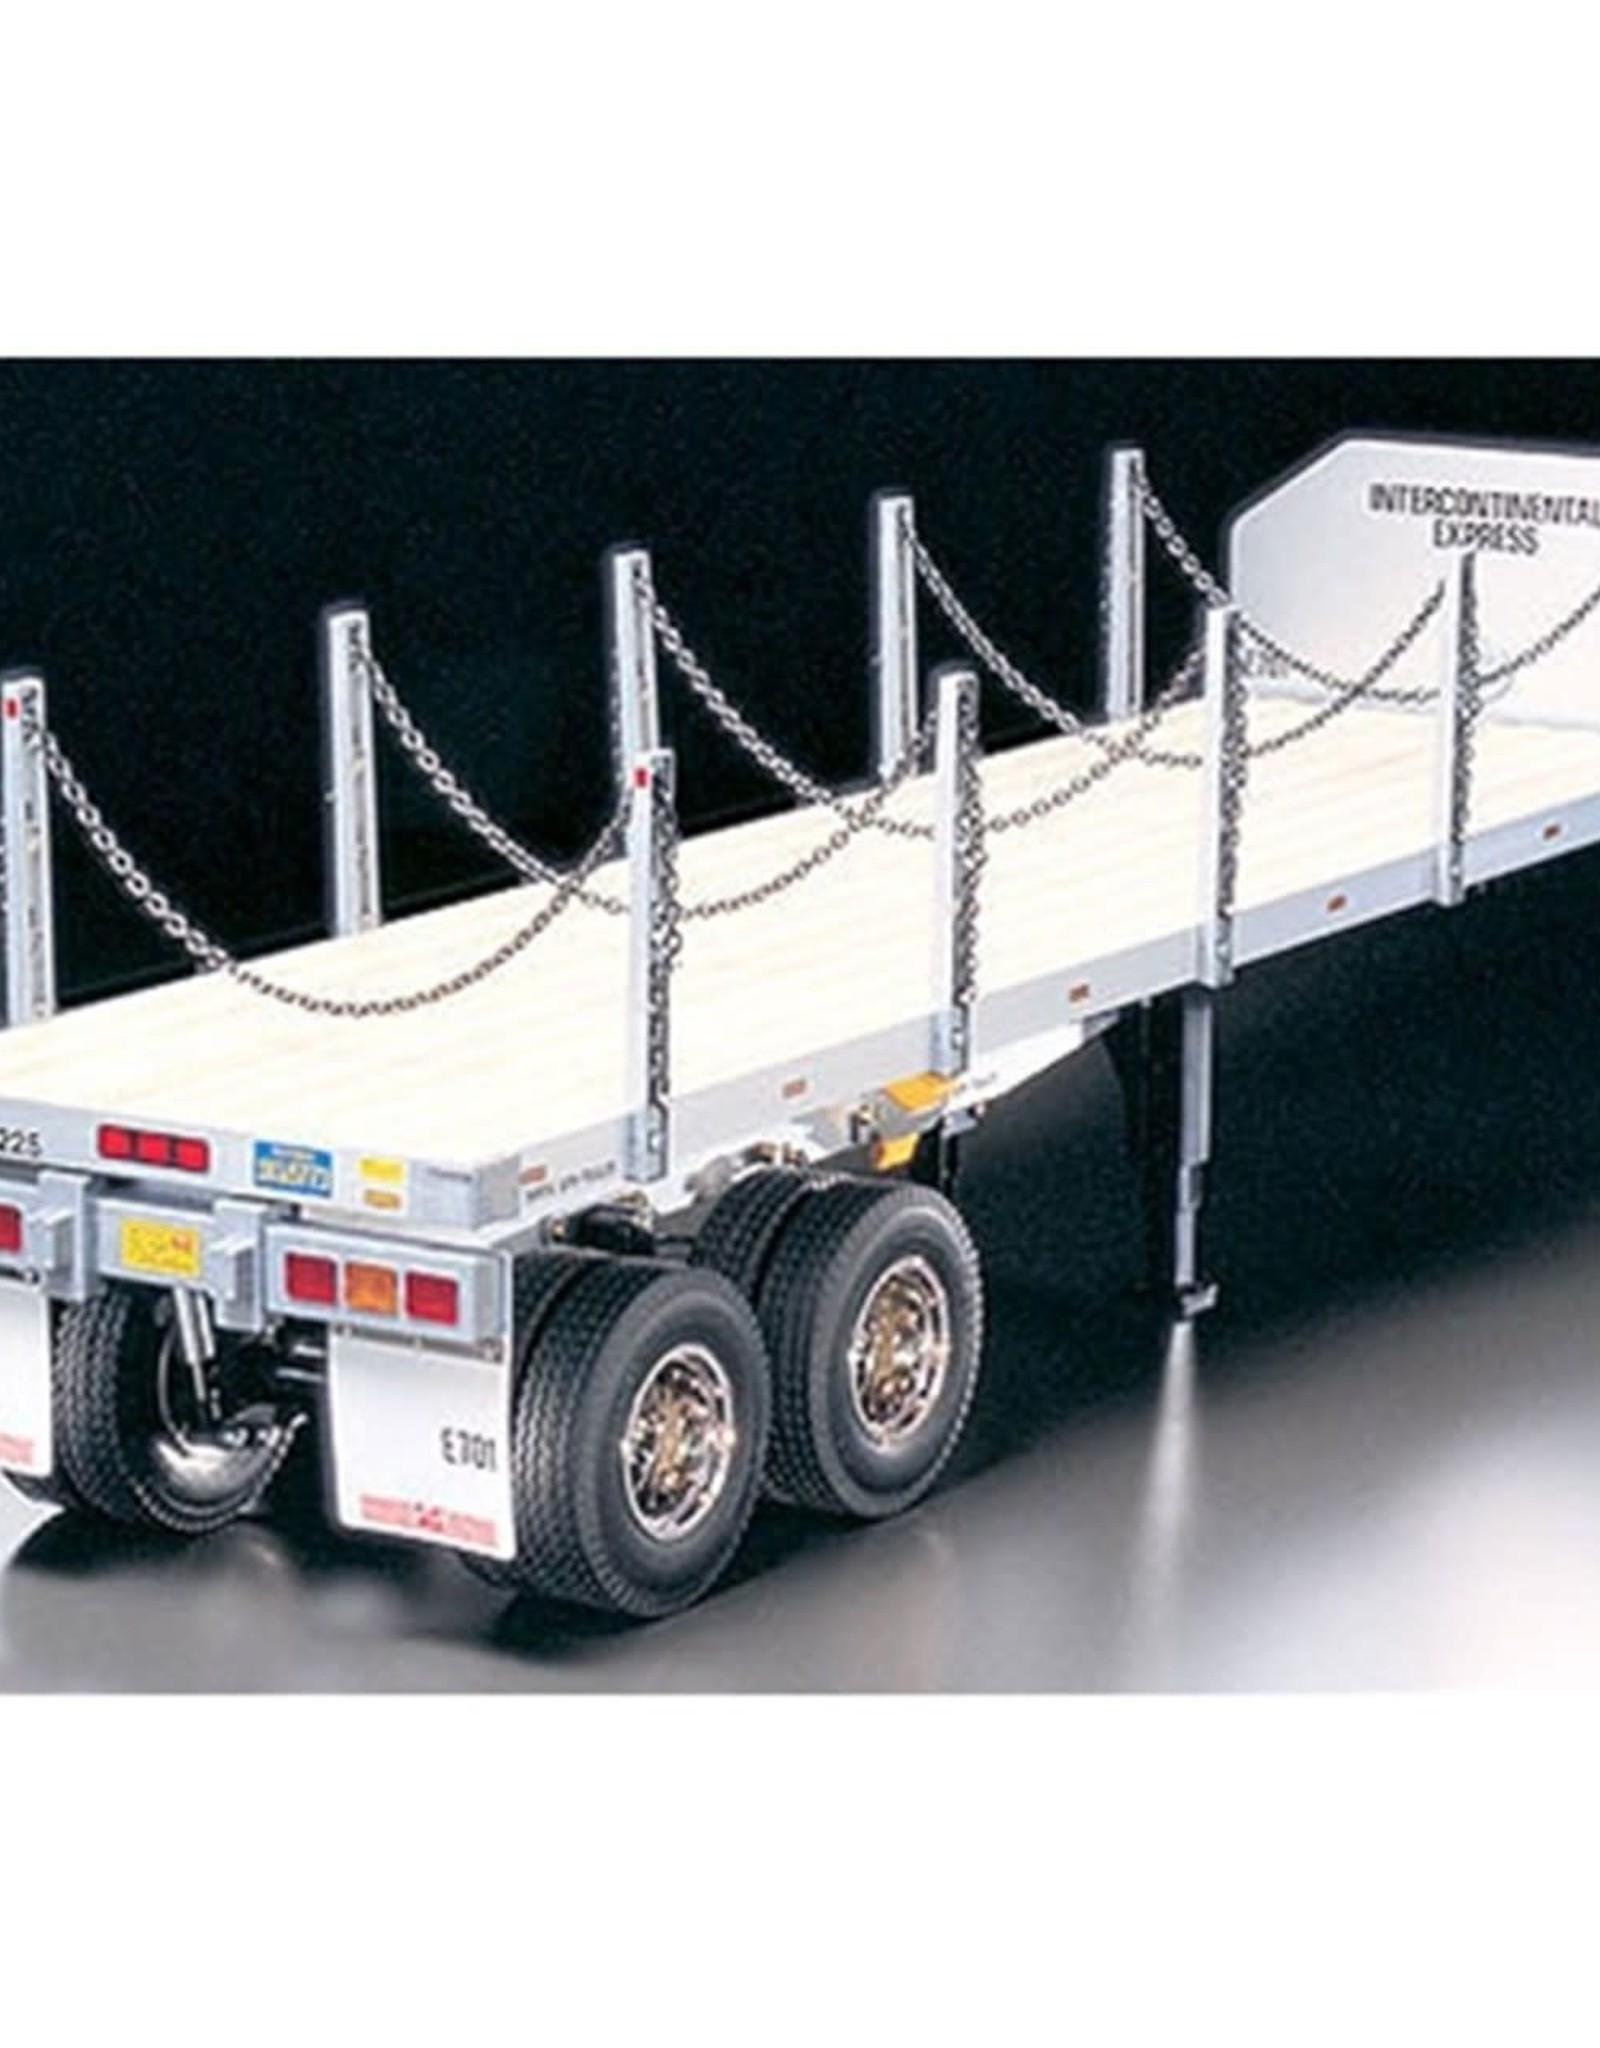 Tamiya Tamiya 1/14 Flatbed Semi Trailer Kit TAM56306